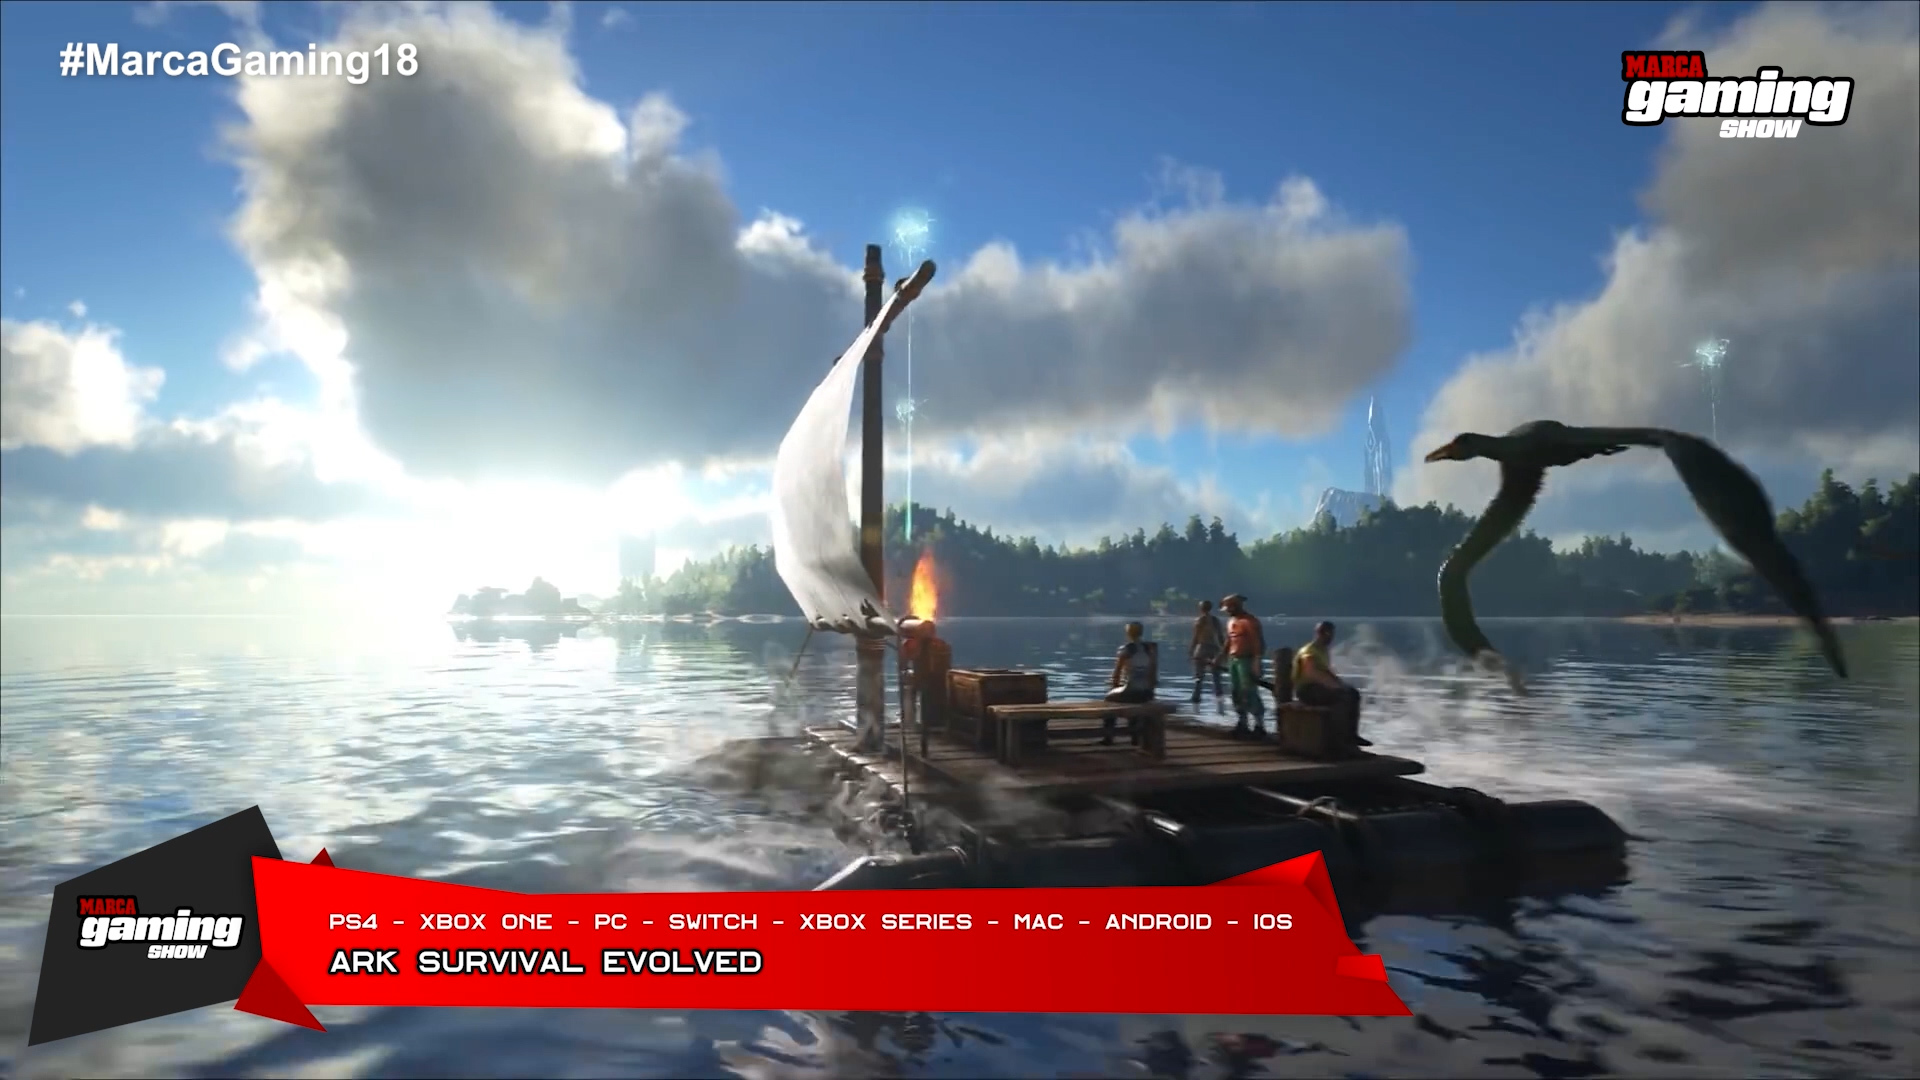 ARK Survival Evolved (PC - PS4 - XBOX ONE - SWITCH)